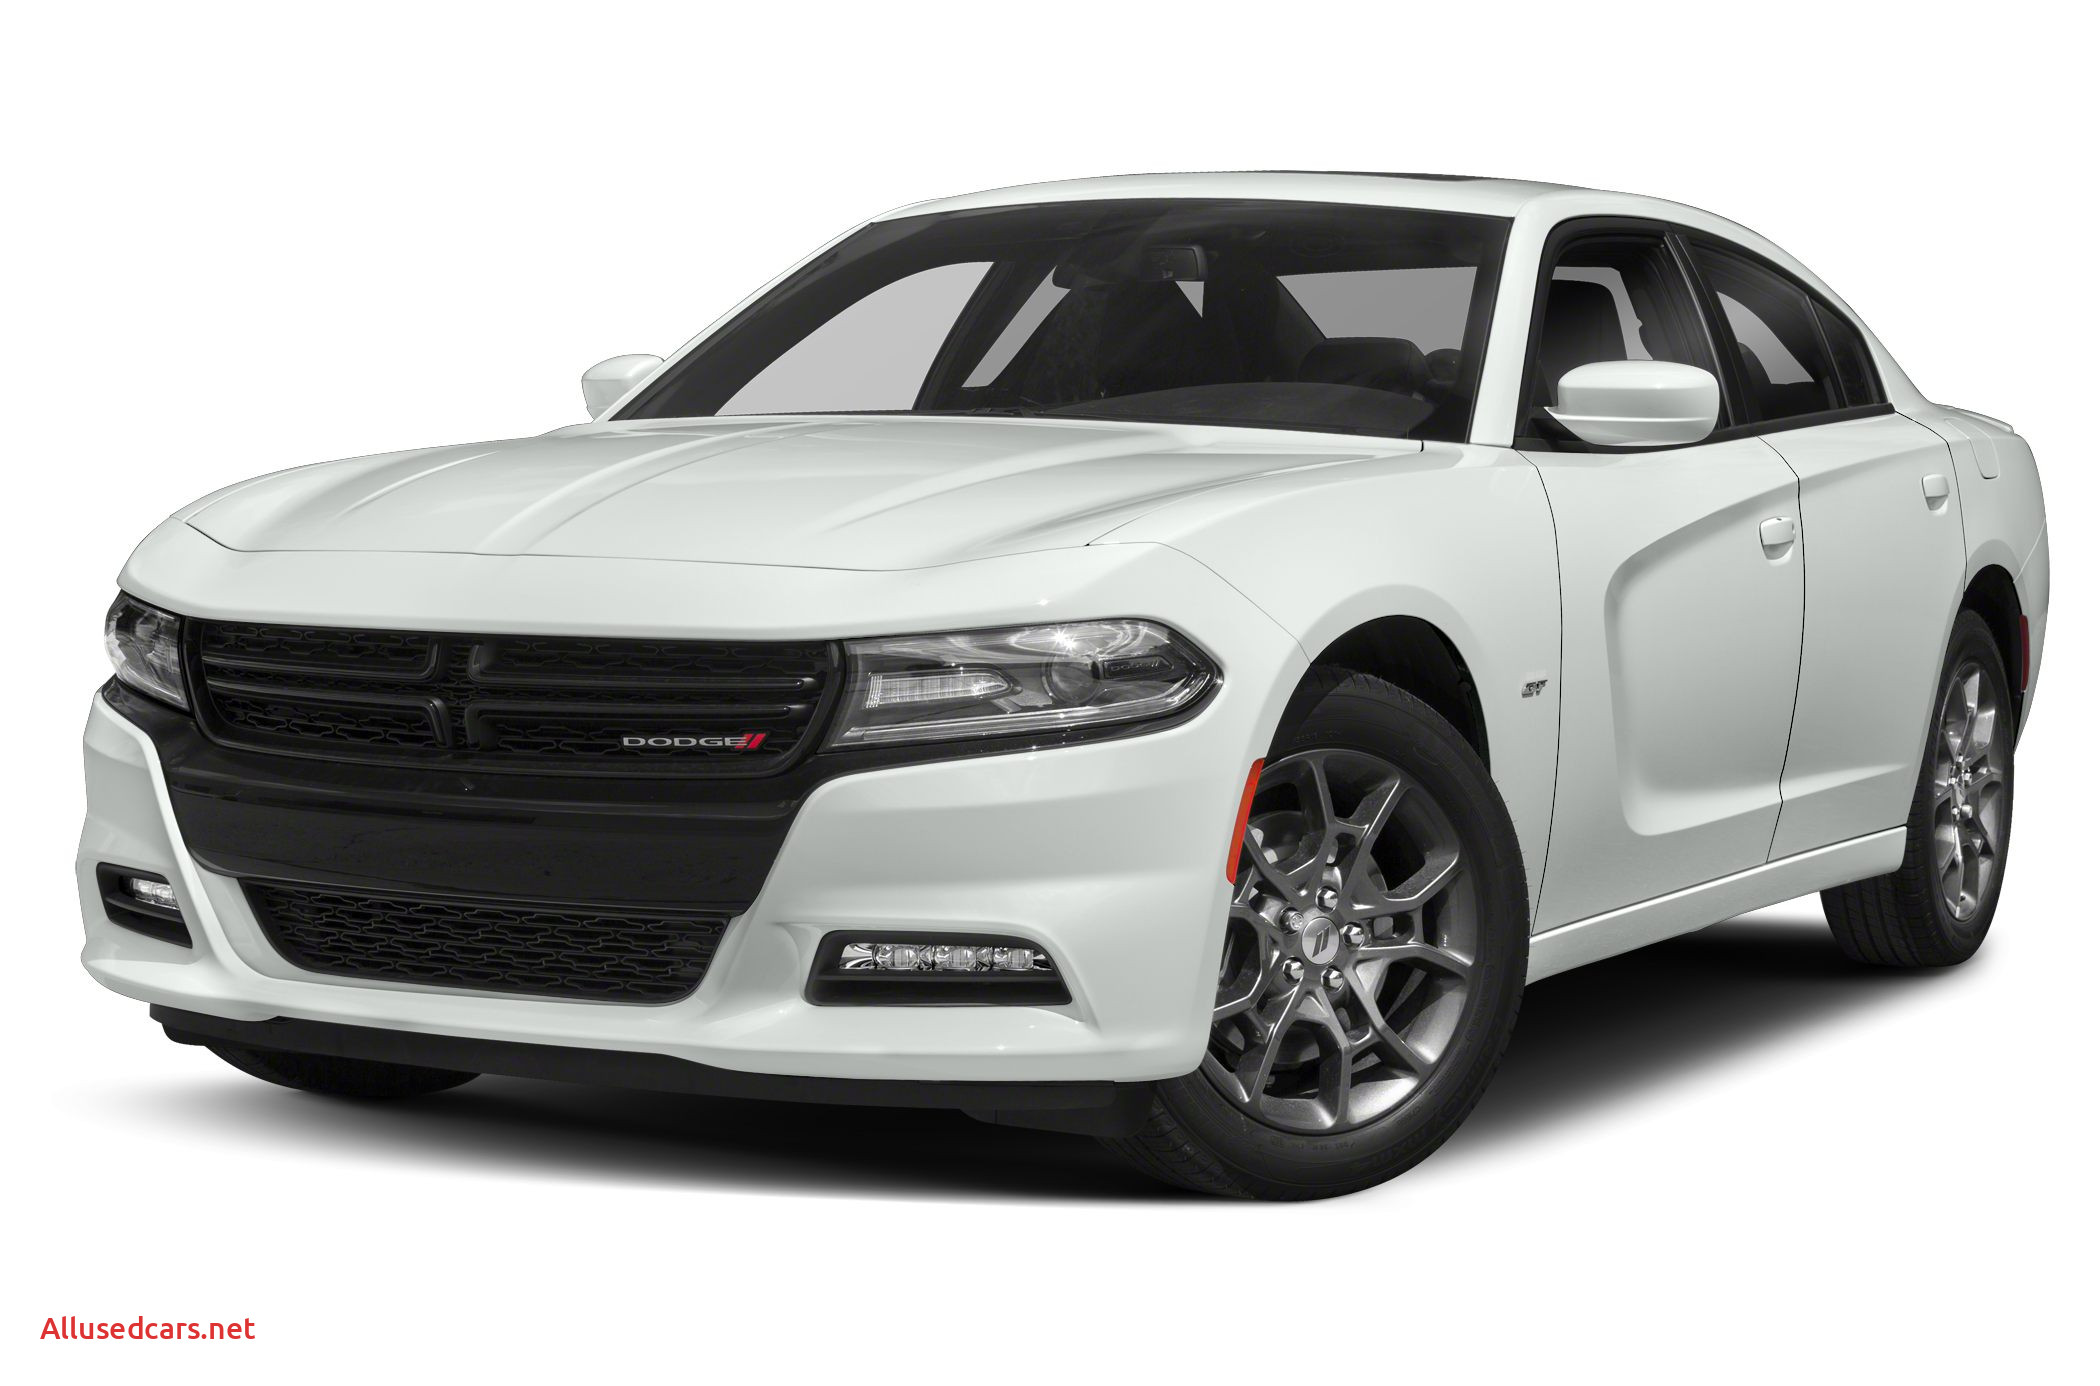 2018 Dodge Charger Sxt Awesome 2018 Dodge Charger Gt 4dr All Wheel Drive Sedan Pricing and Options